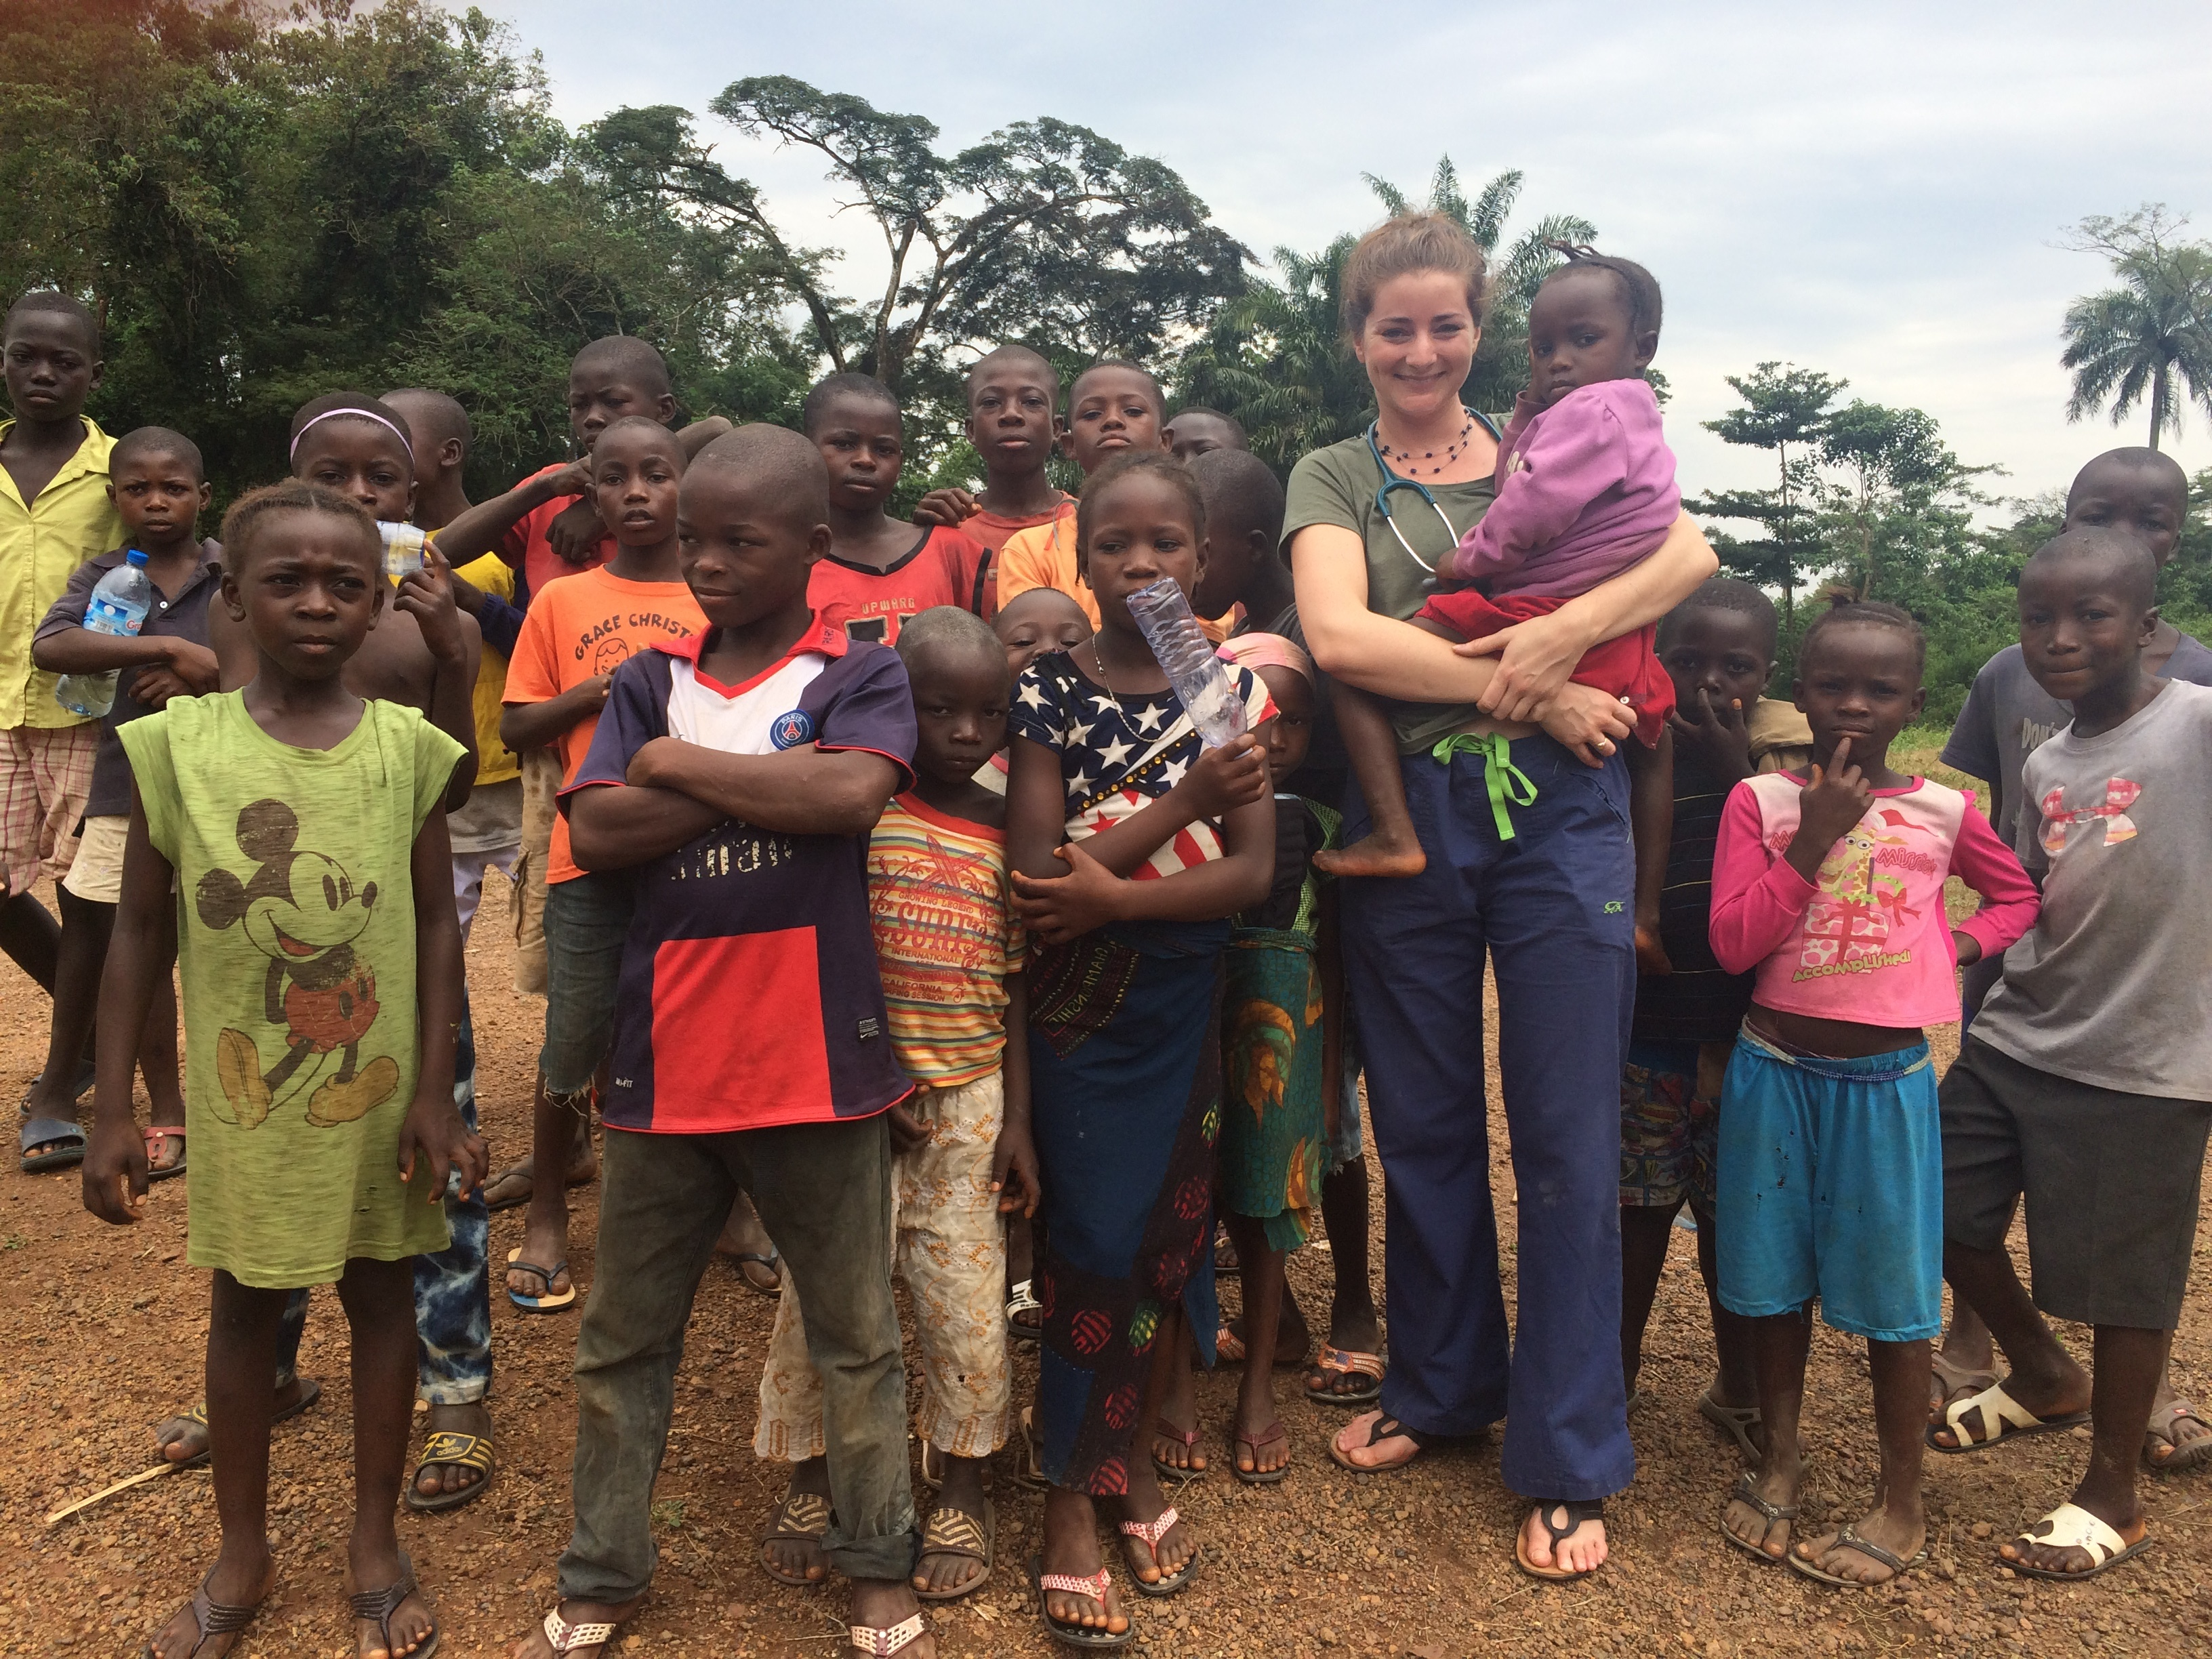 Trinity grad Dr. Waterman in Sierra Leone